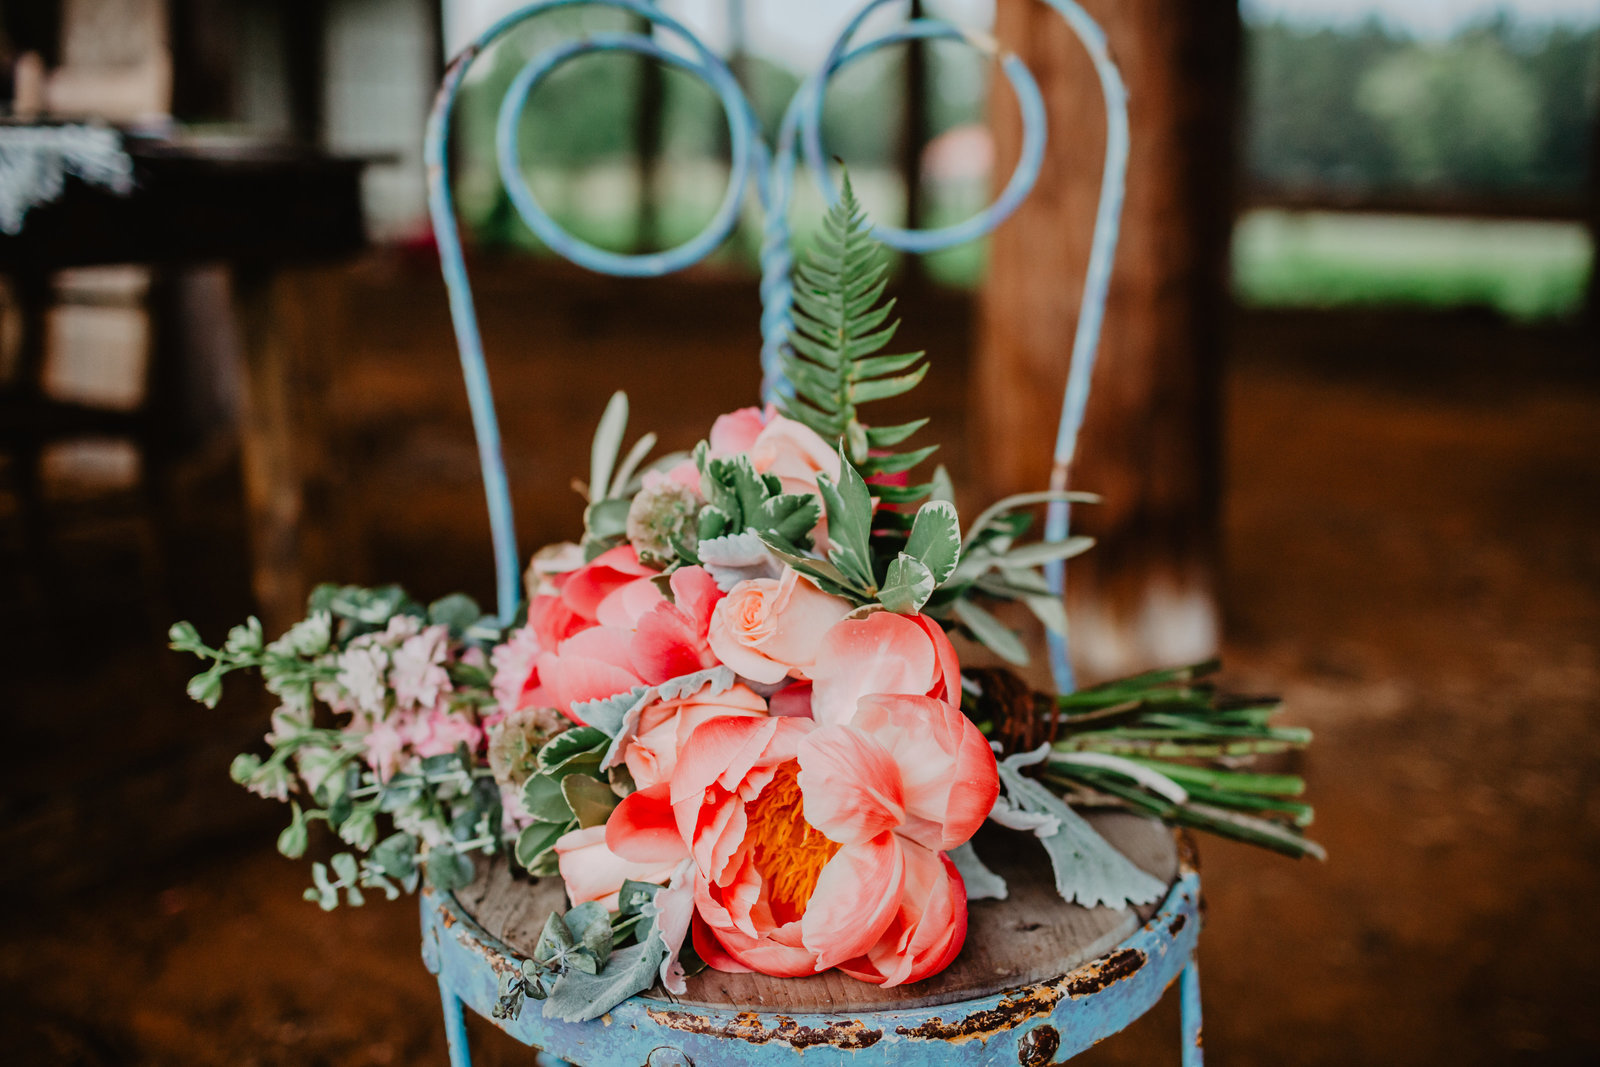 Placed upon a blue vintage iron chair this lush bridal bouquet was perfect in color and design